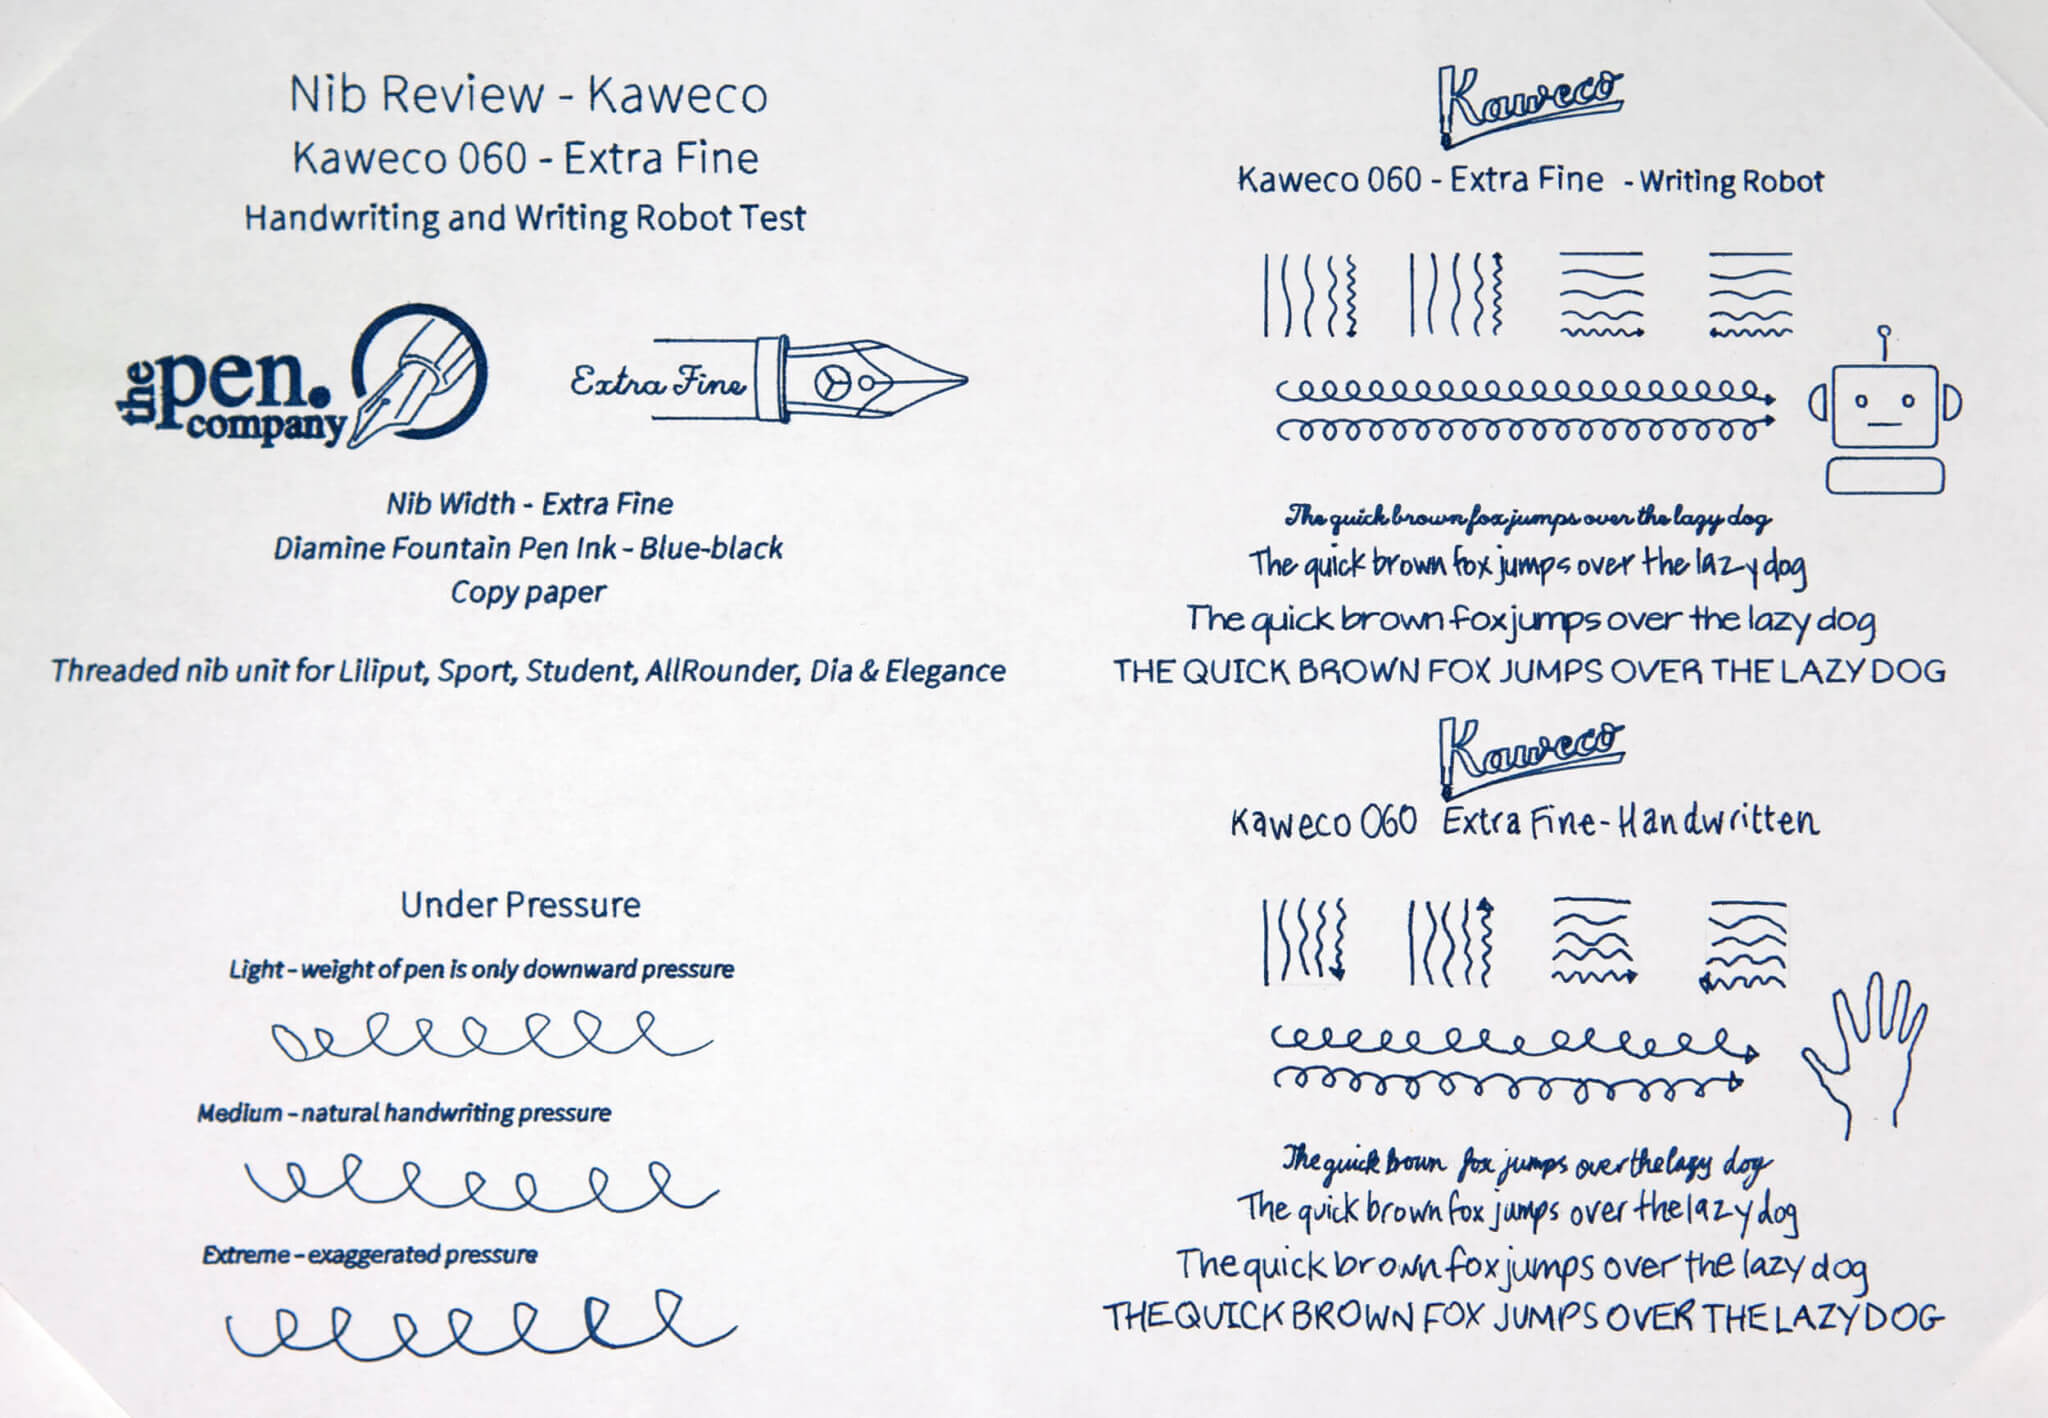 Kaweco writing robot and handwriting test